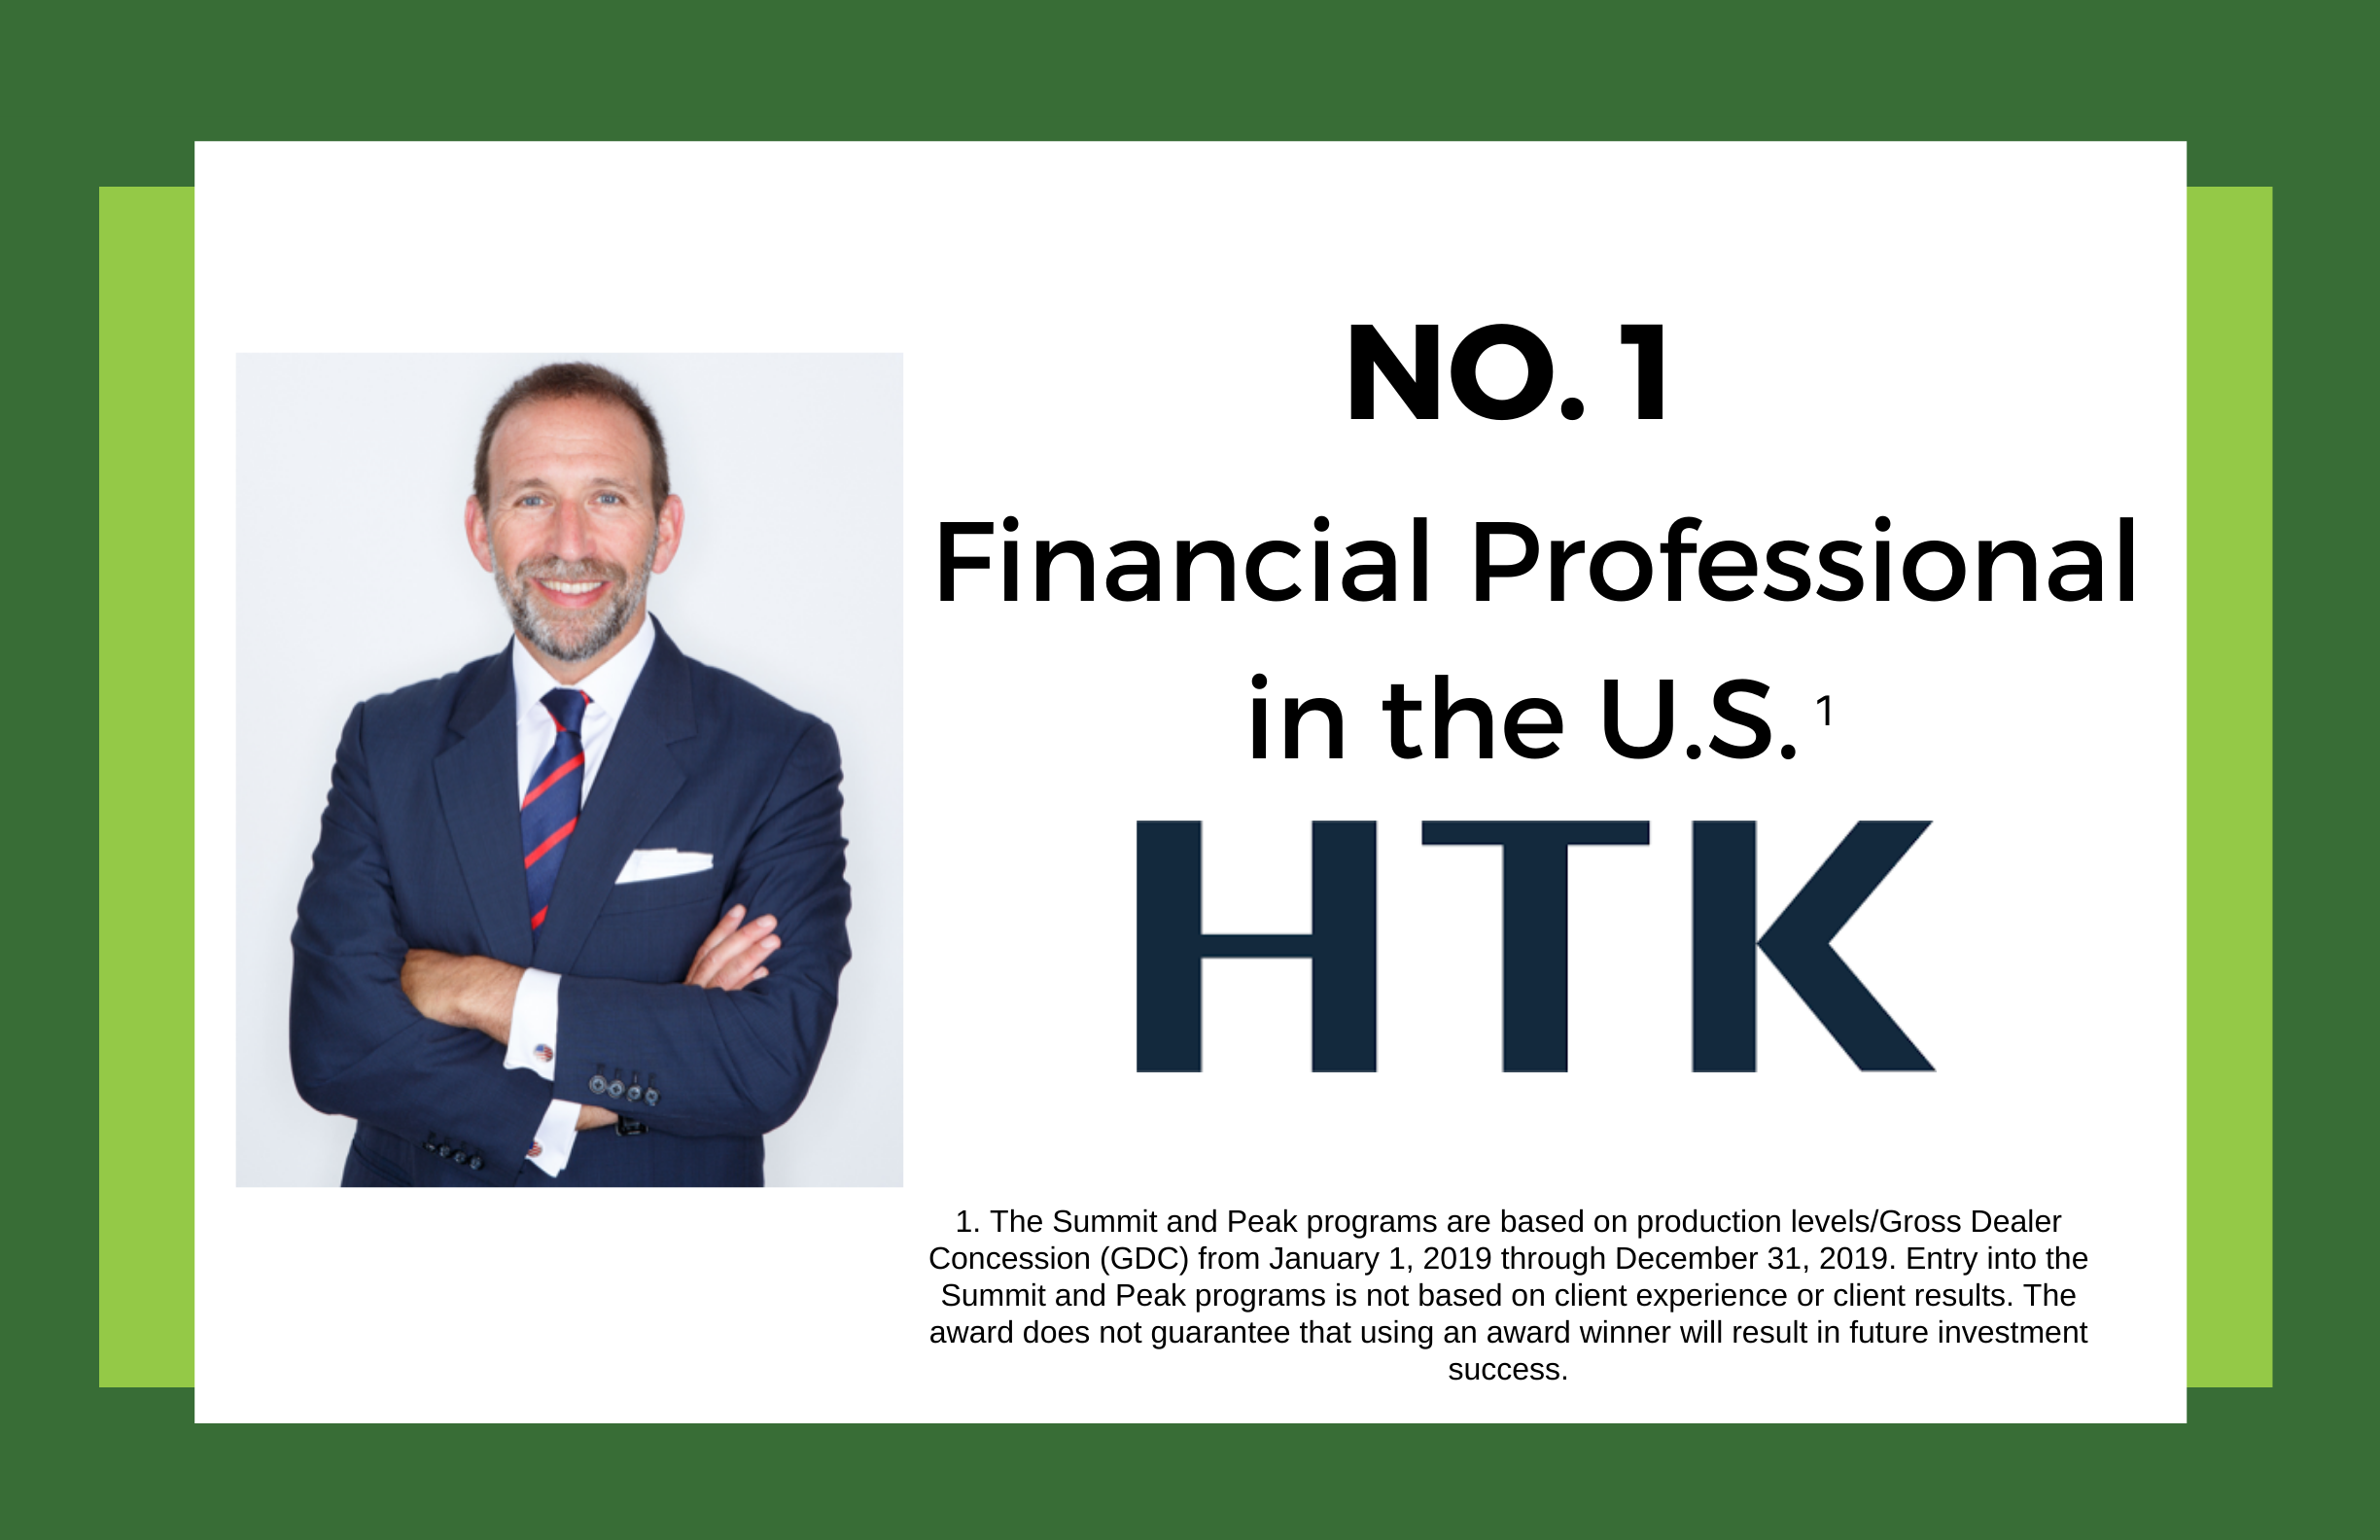 Lance Drucker, ChFC®, CLU®, named the Top Financial Professional in the U.S. by HTK Thumbnail